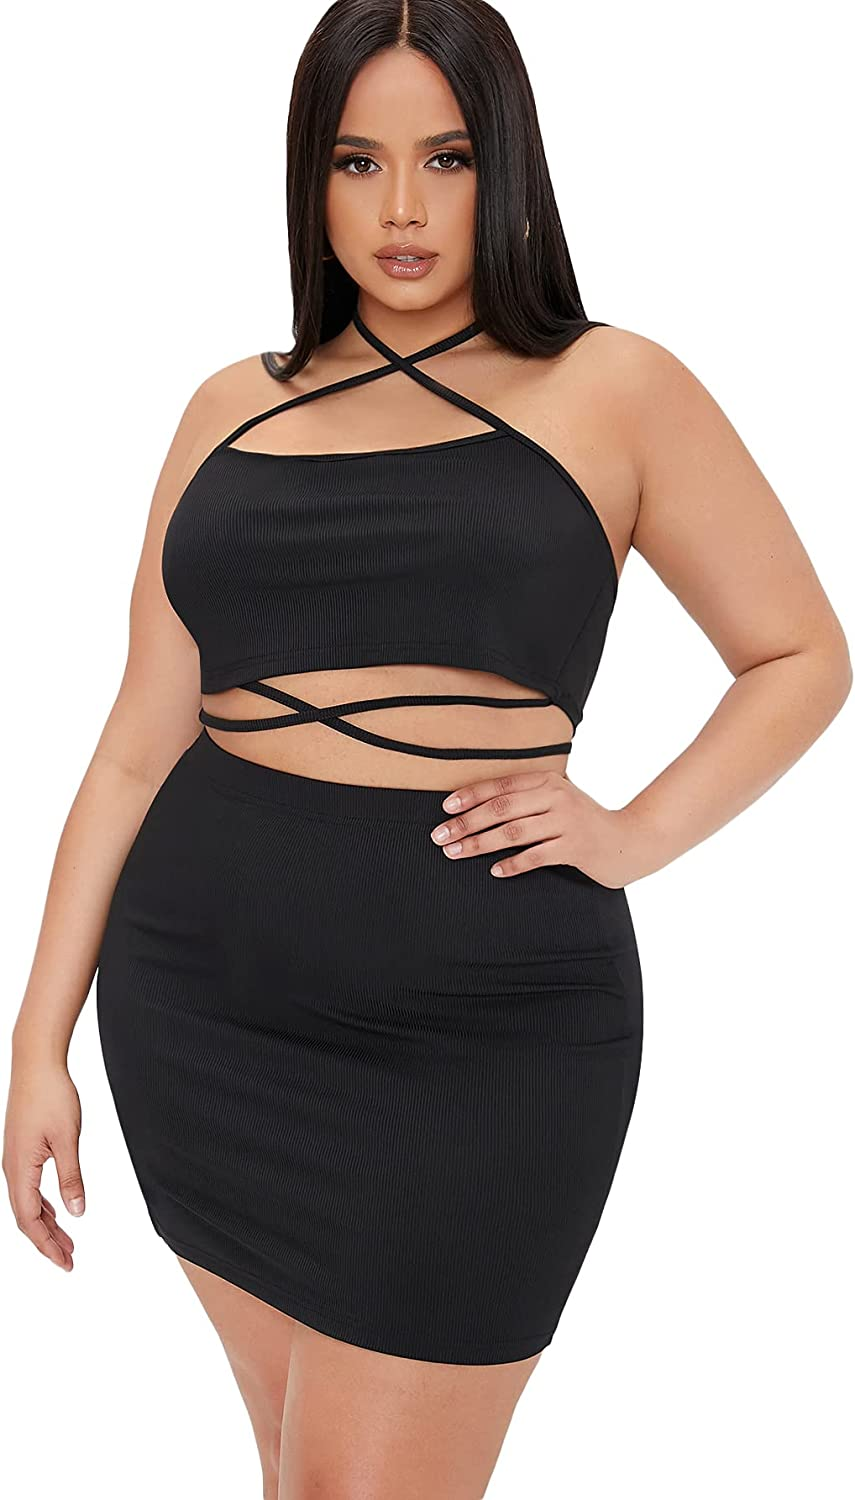 Romwe Women's Plus Size Criss Cross Halter Crop Tops and Mini Bodycon Skirts Set 2 Piece Outfit